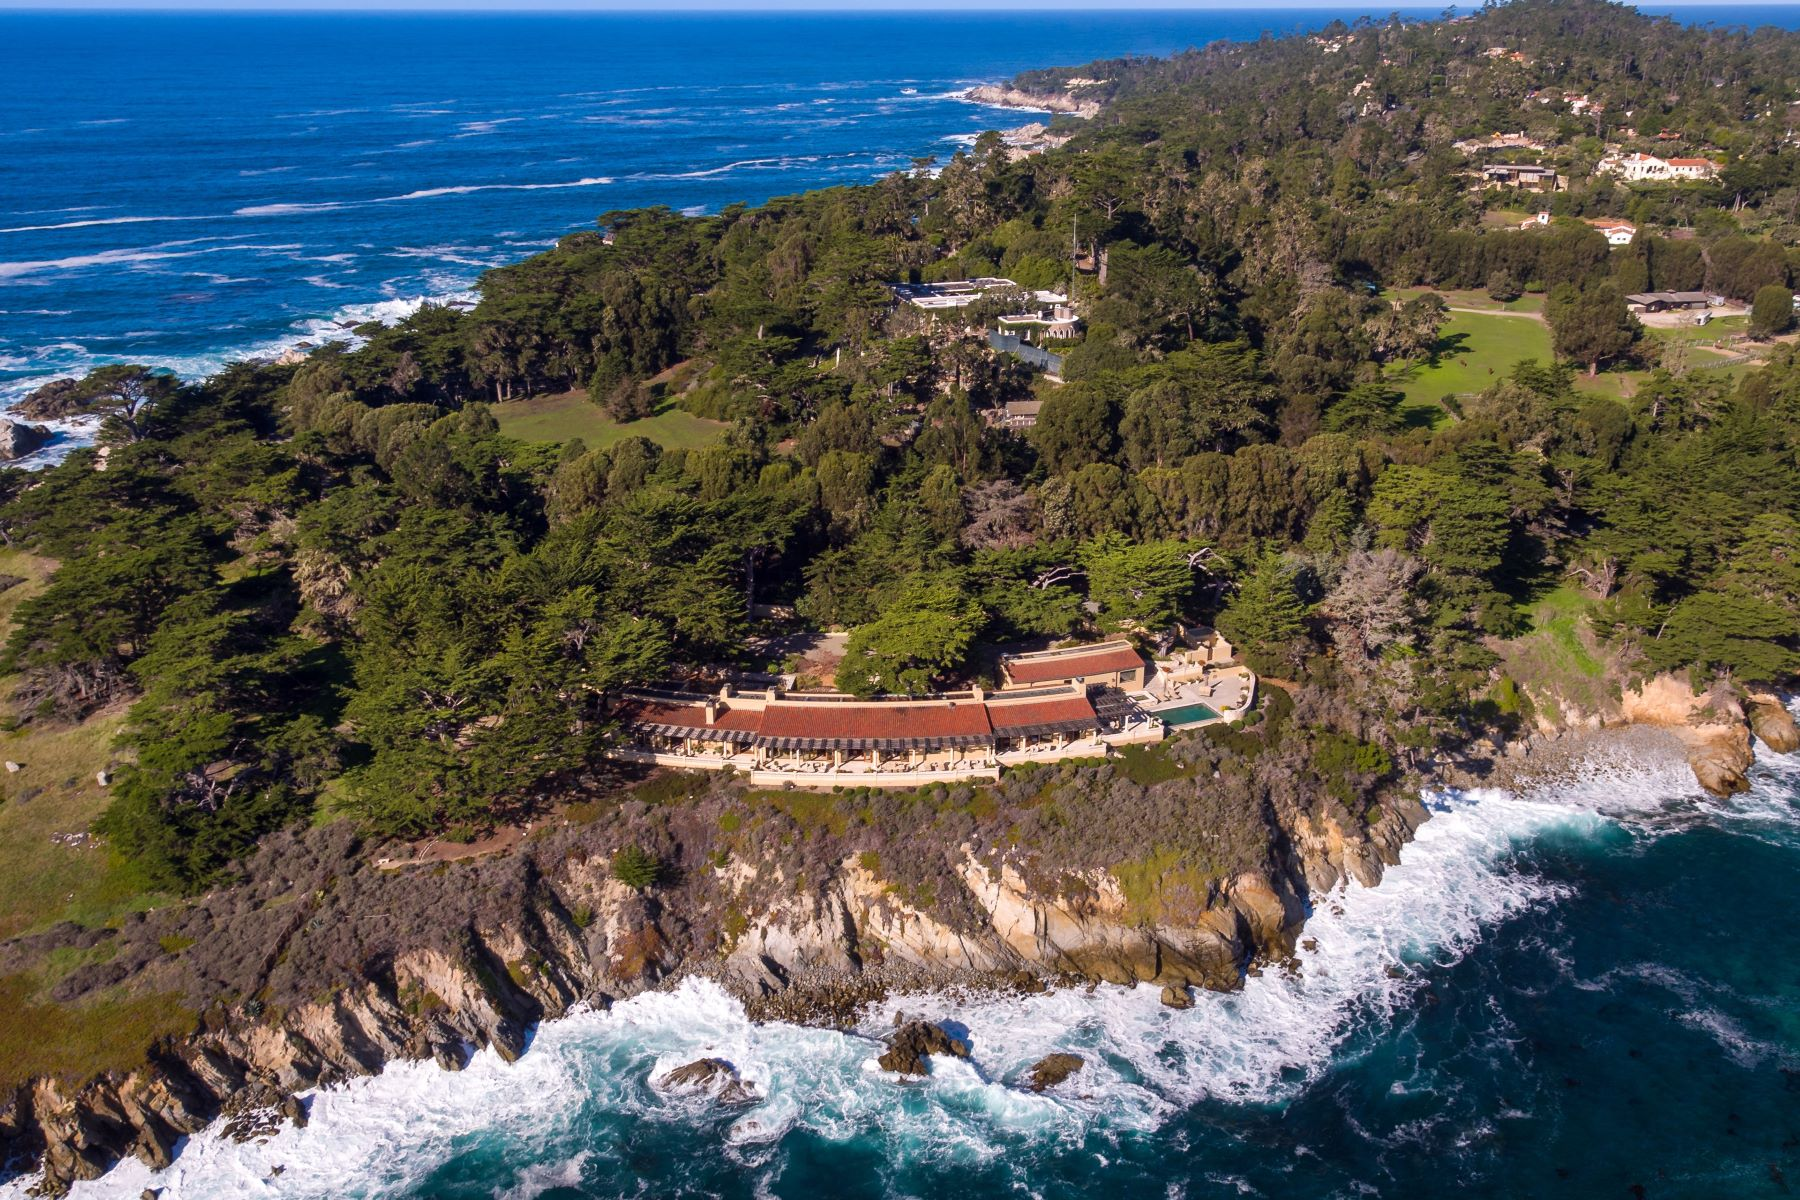 Single Family Home for Sale at 3290 17 Mile Drive Pebble Beach, California 93953 United States